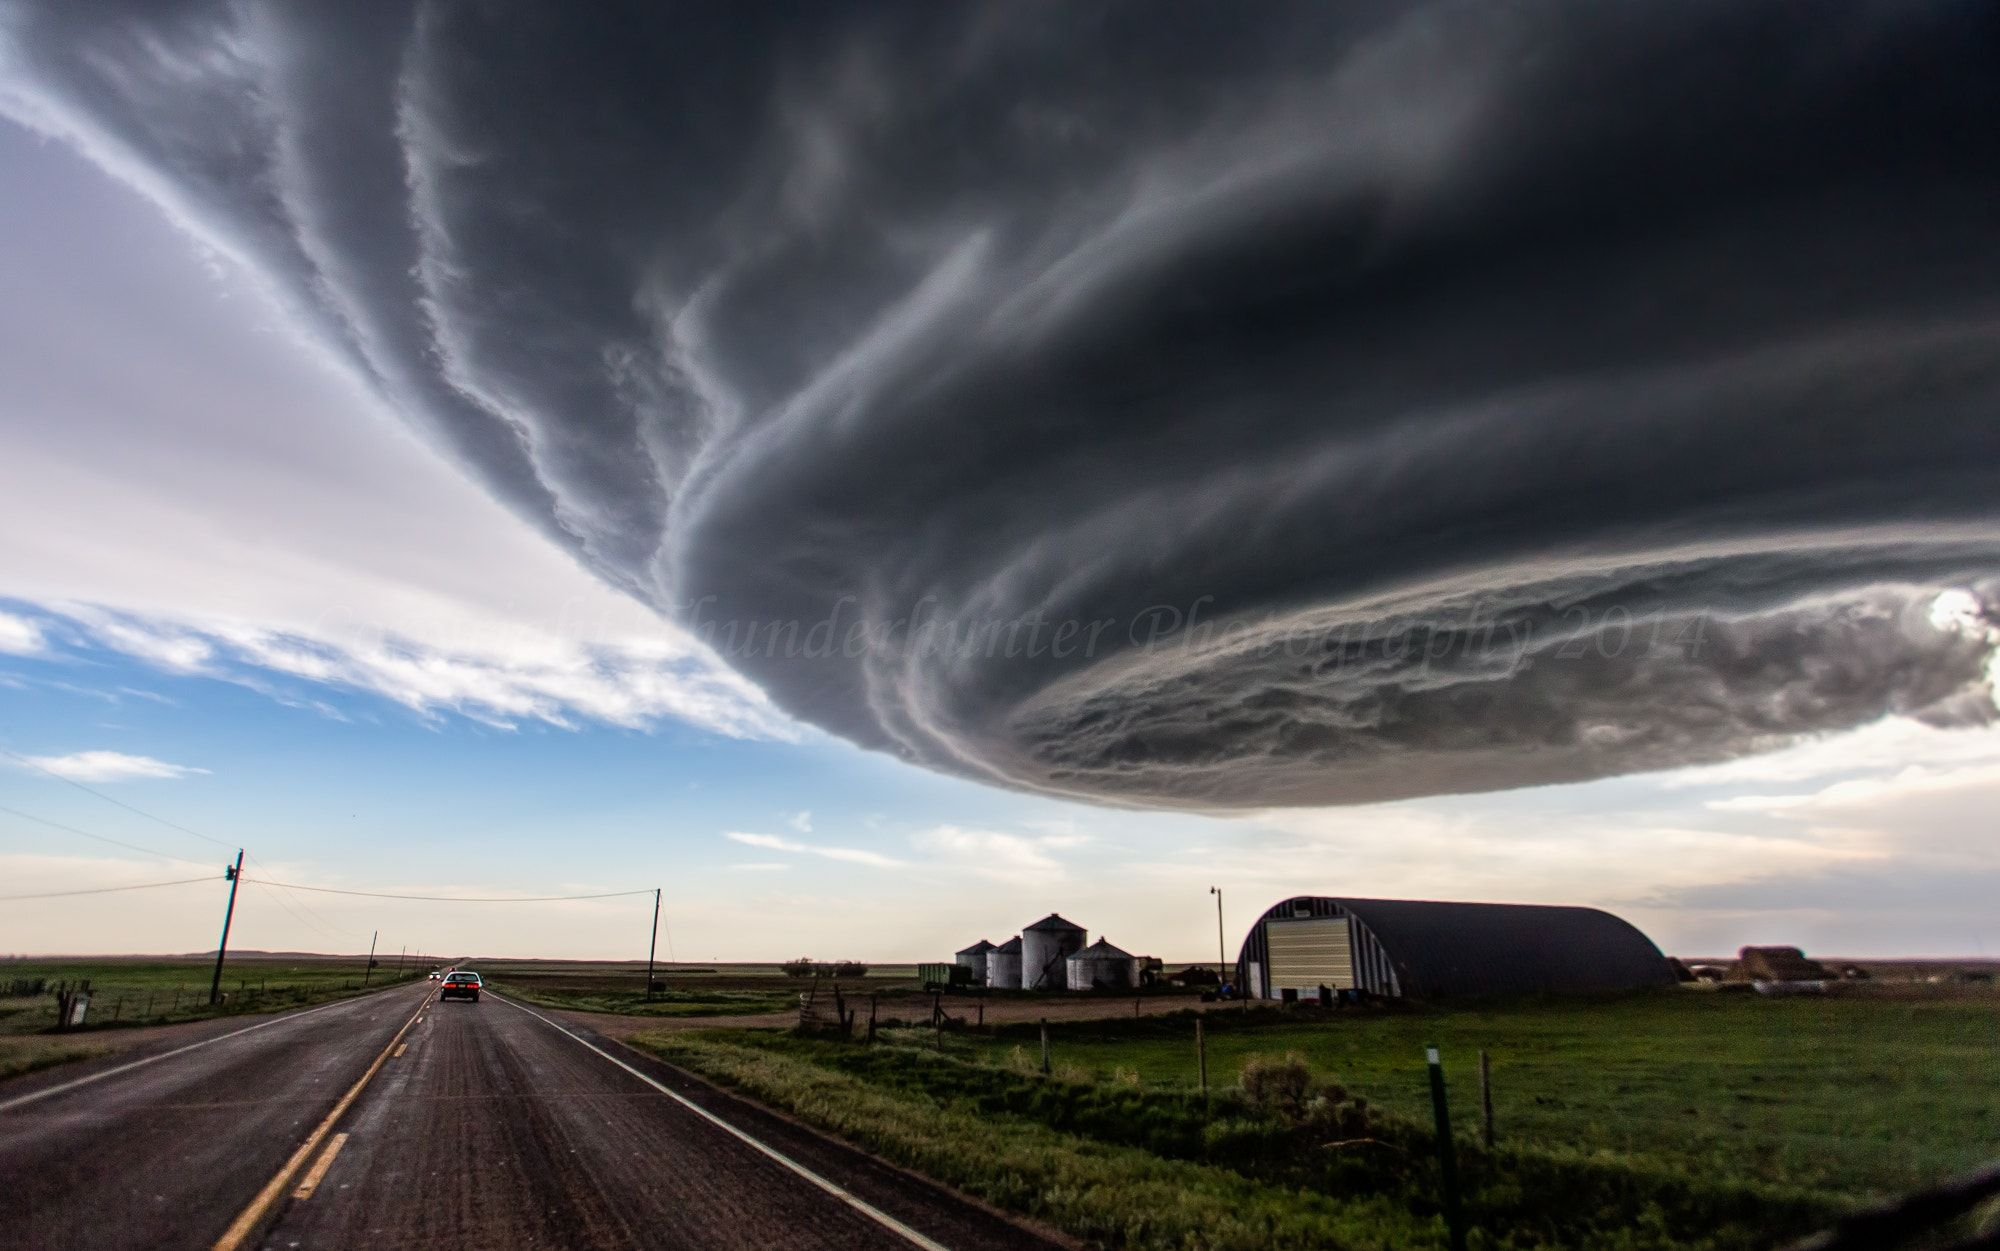 Straight+but+twisted+-+One+of+our+earliest+views+of+the+storm+as+we+approached+from+the+north.++This+supercell+near+Julesburg,+Colorado+on+May+28th+2013+was+simply+jaw-dropping.